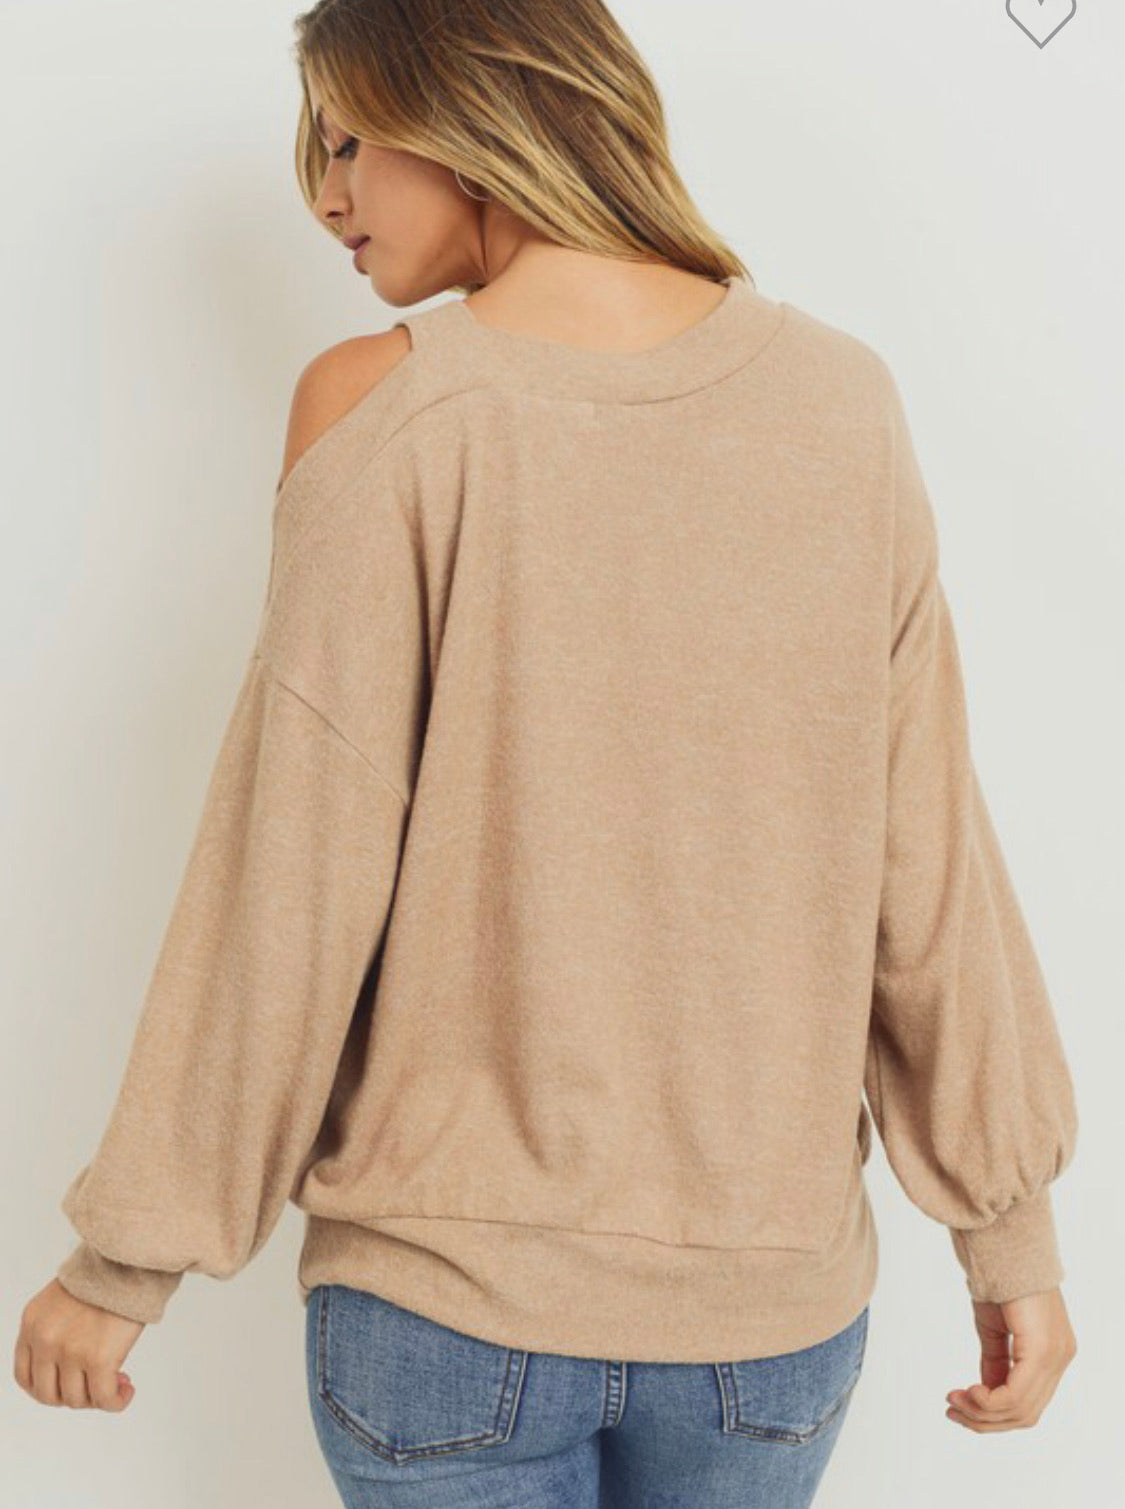 Shoulder Strap Sweater